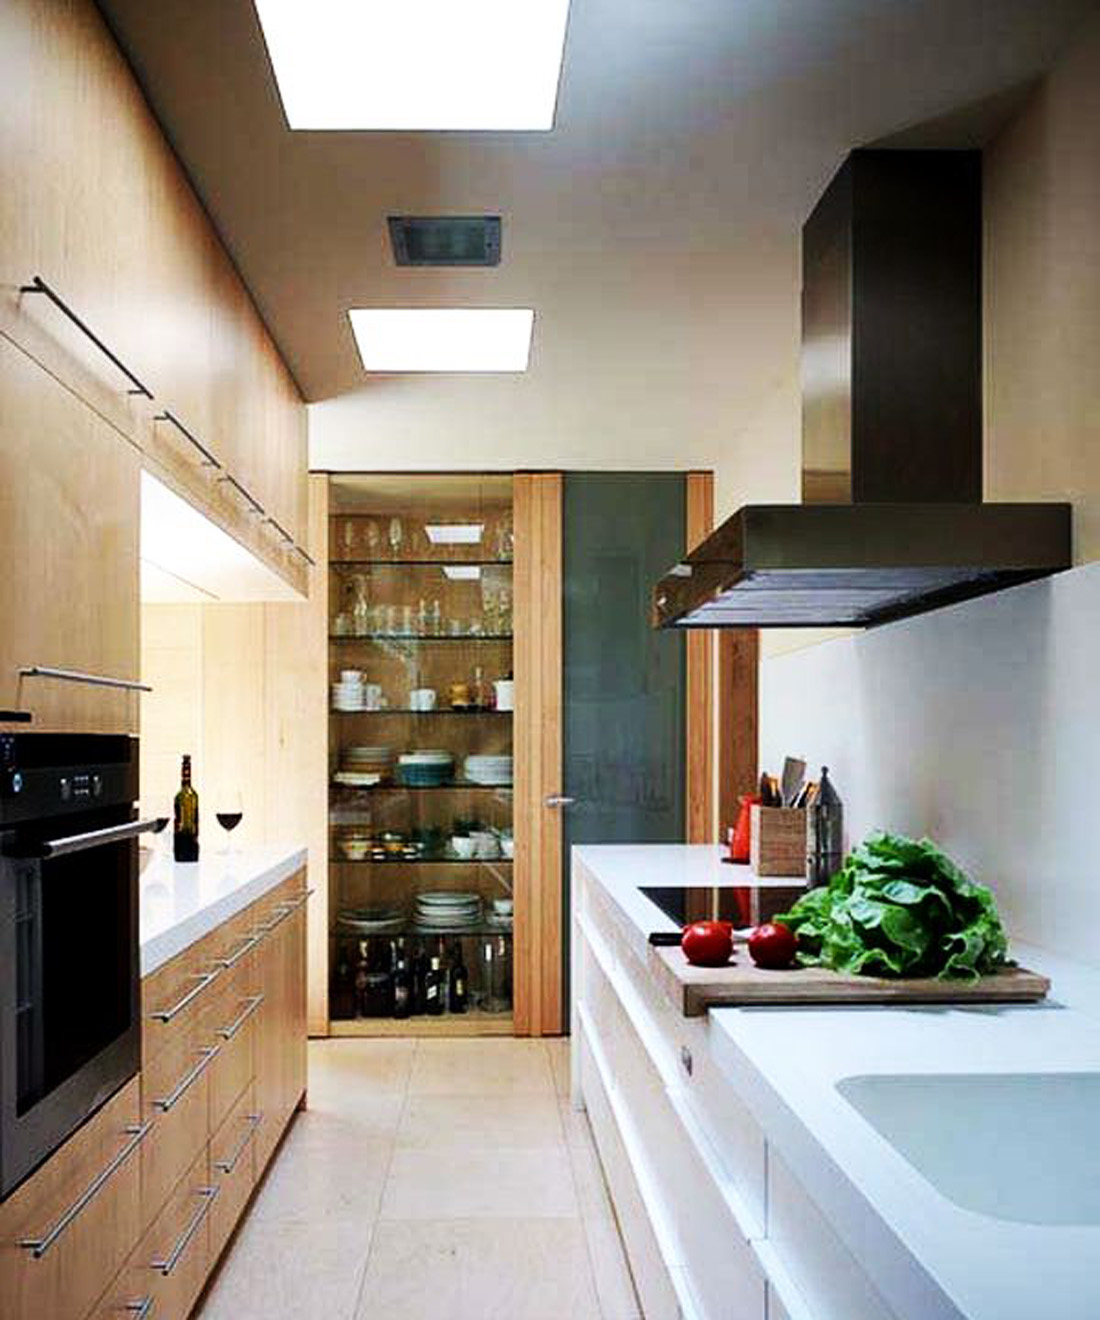 25 Modern Small Kitchen Design Ideas on Modern Kitchen Design  id=38055